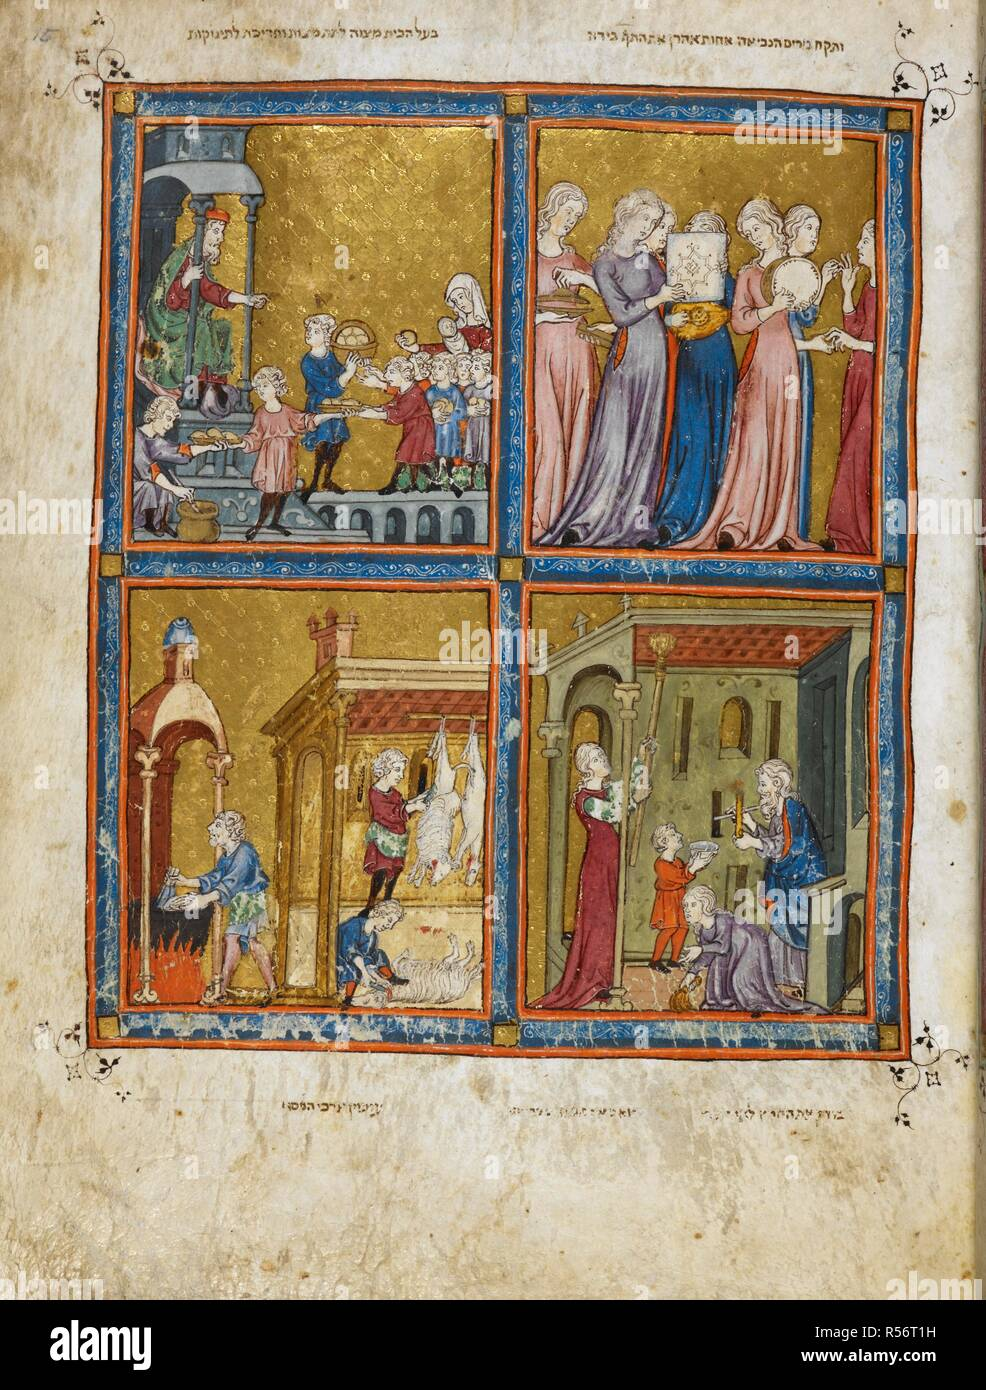 Matzot and Haroset being given to the children; Miriam the prophetess; Slaughtering of the lambs for Passover; Searching for leaven. The Golden Haggadah. Catalonia, early 14th century. Source: Add. 27210, f.15. Language: Hebrew. - Stock Image